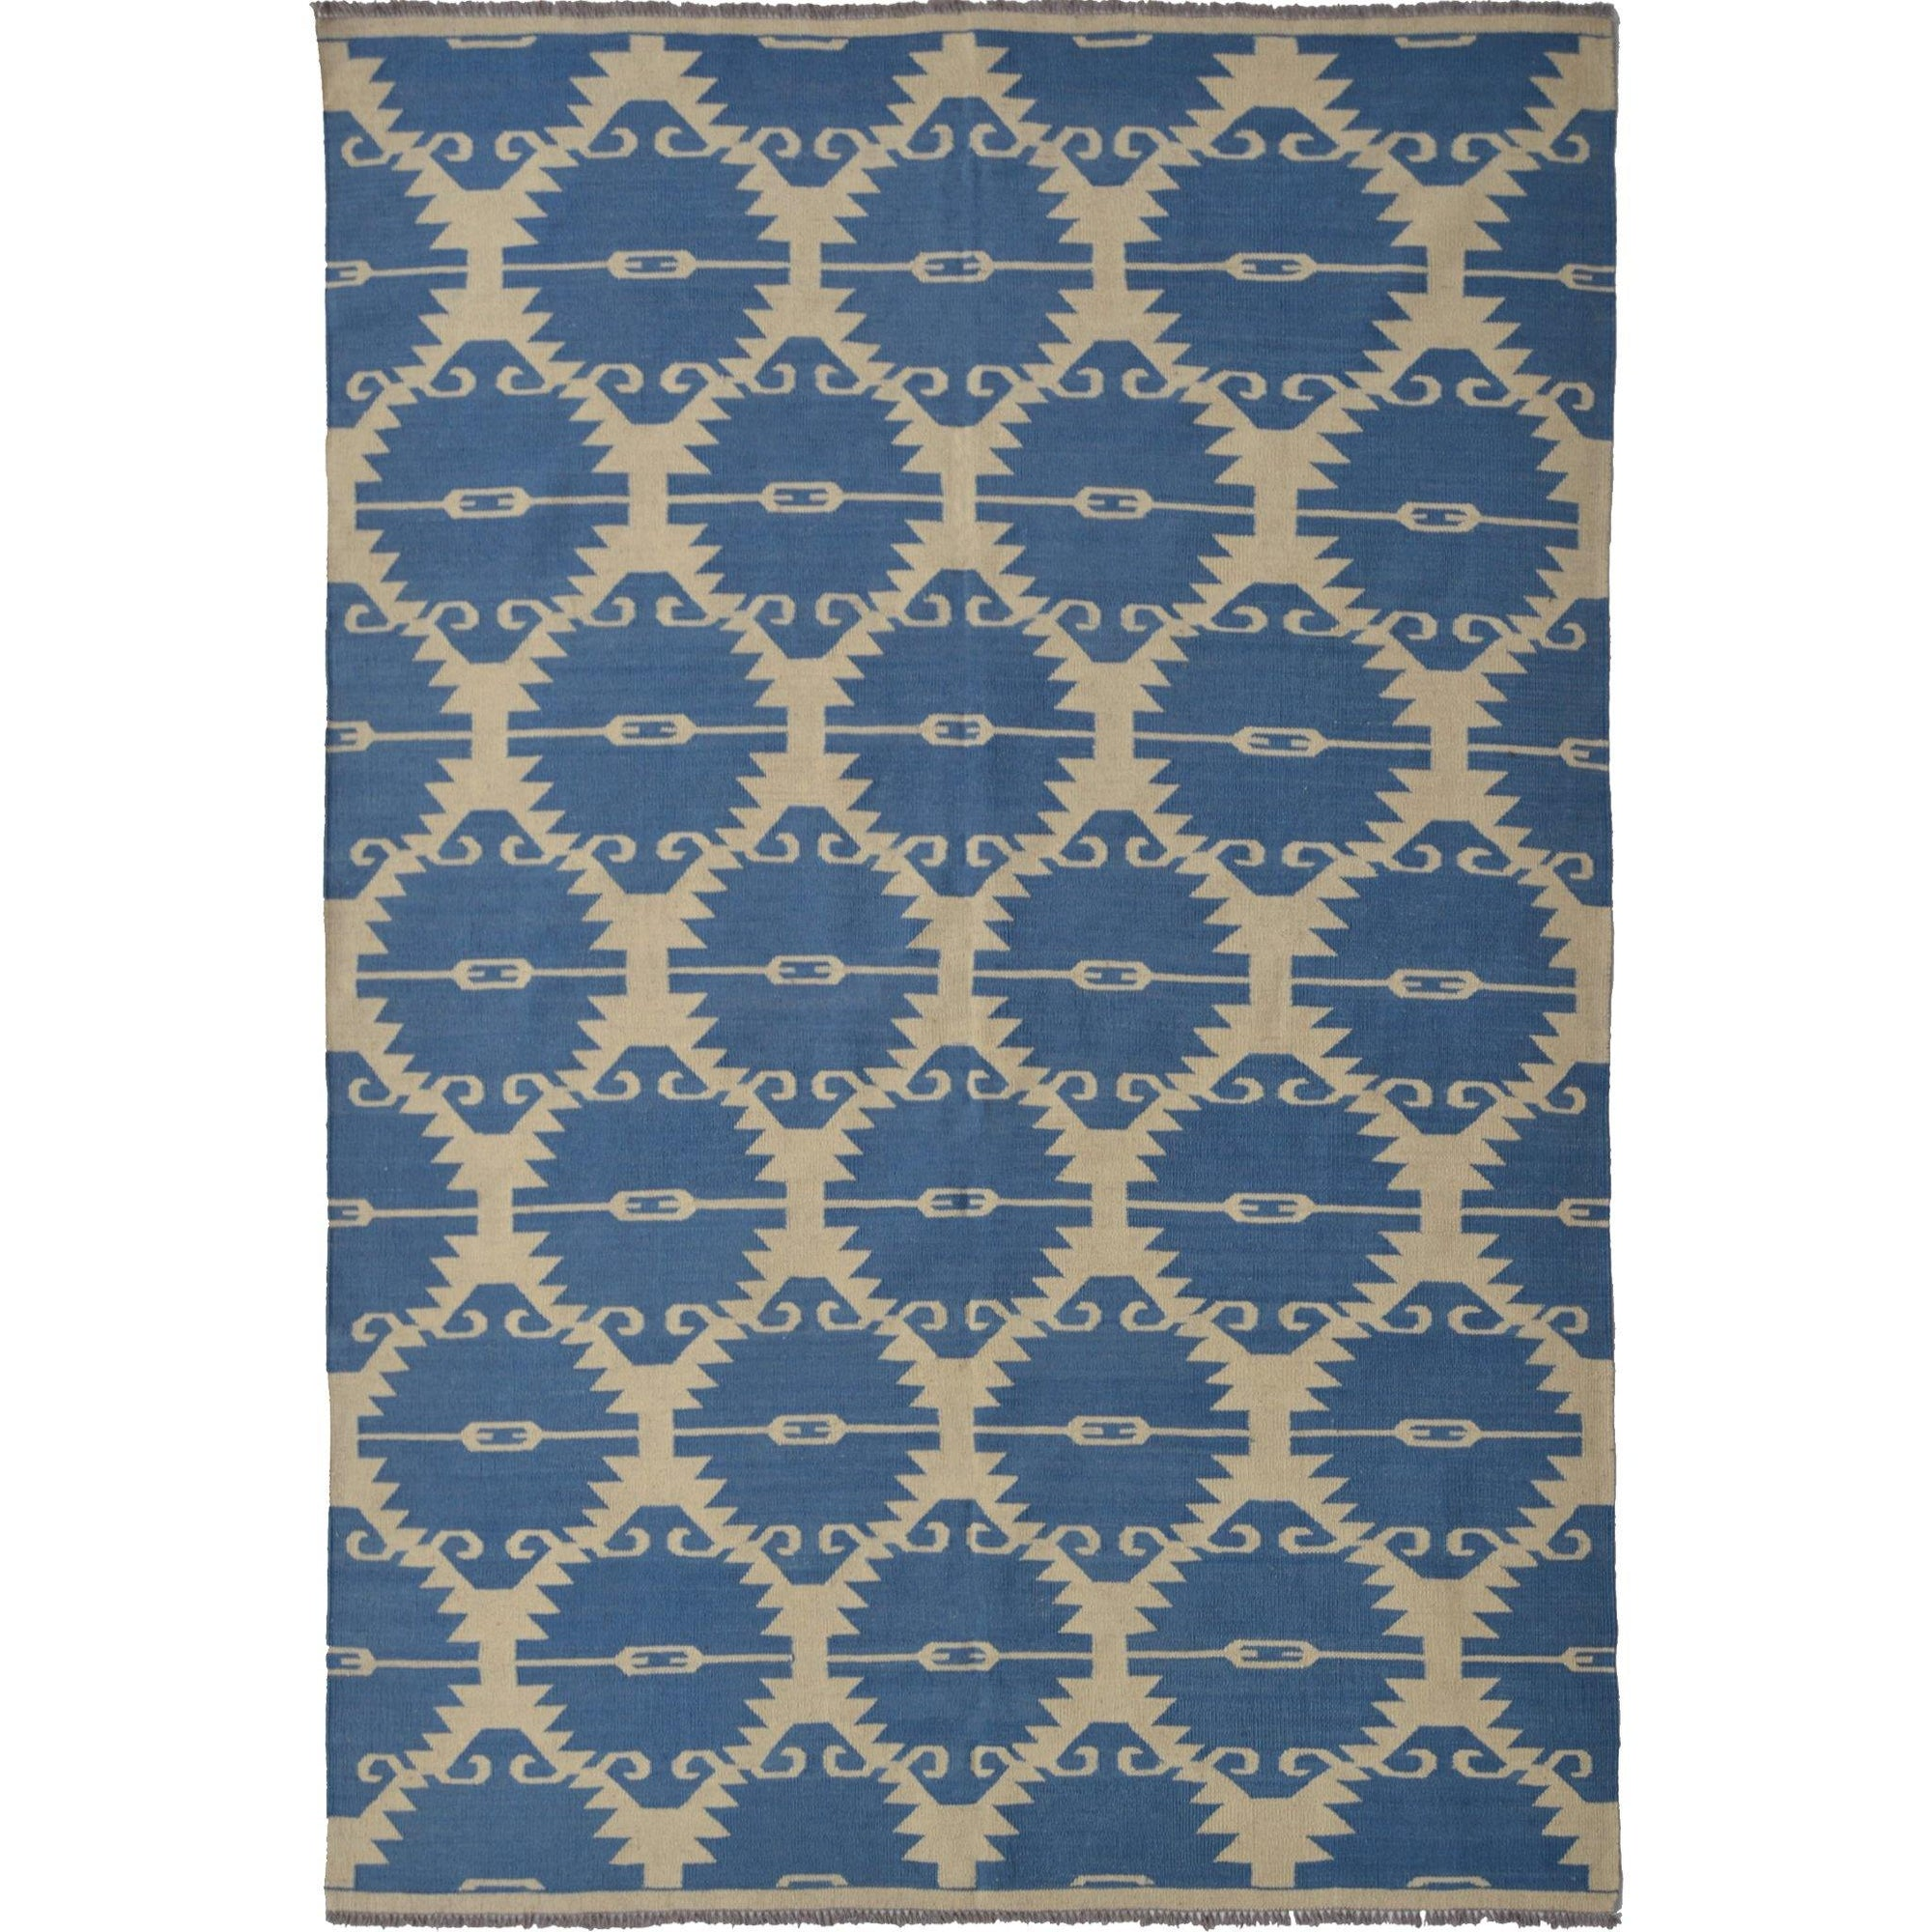 Modern Hand-woven 100% Wool Chobi Kilim Rug 188cm x 244cm Persian-Rug | House-of-Haghi | NewMarket | Auckland | NZ | Handmade Persian Rugs | Hand Knotted Persian Rugs